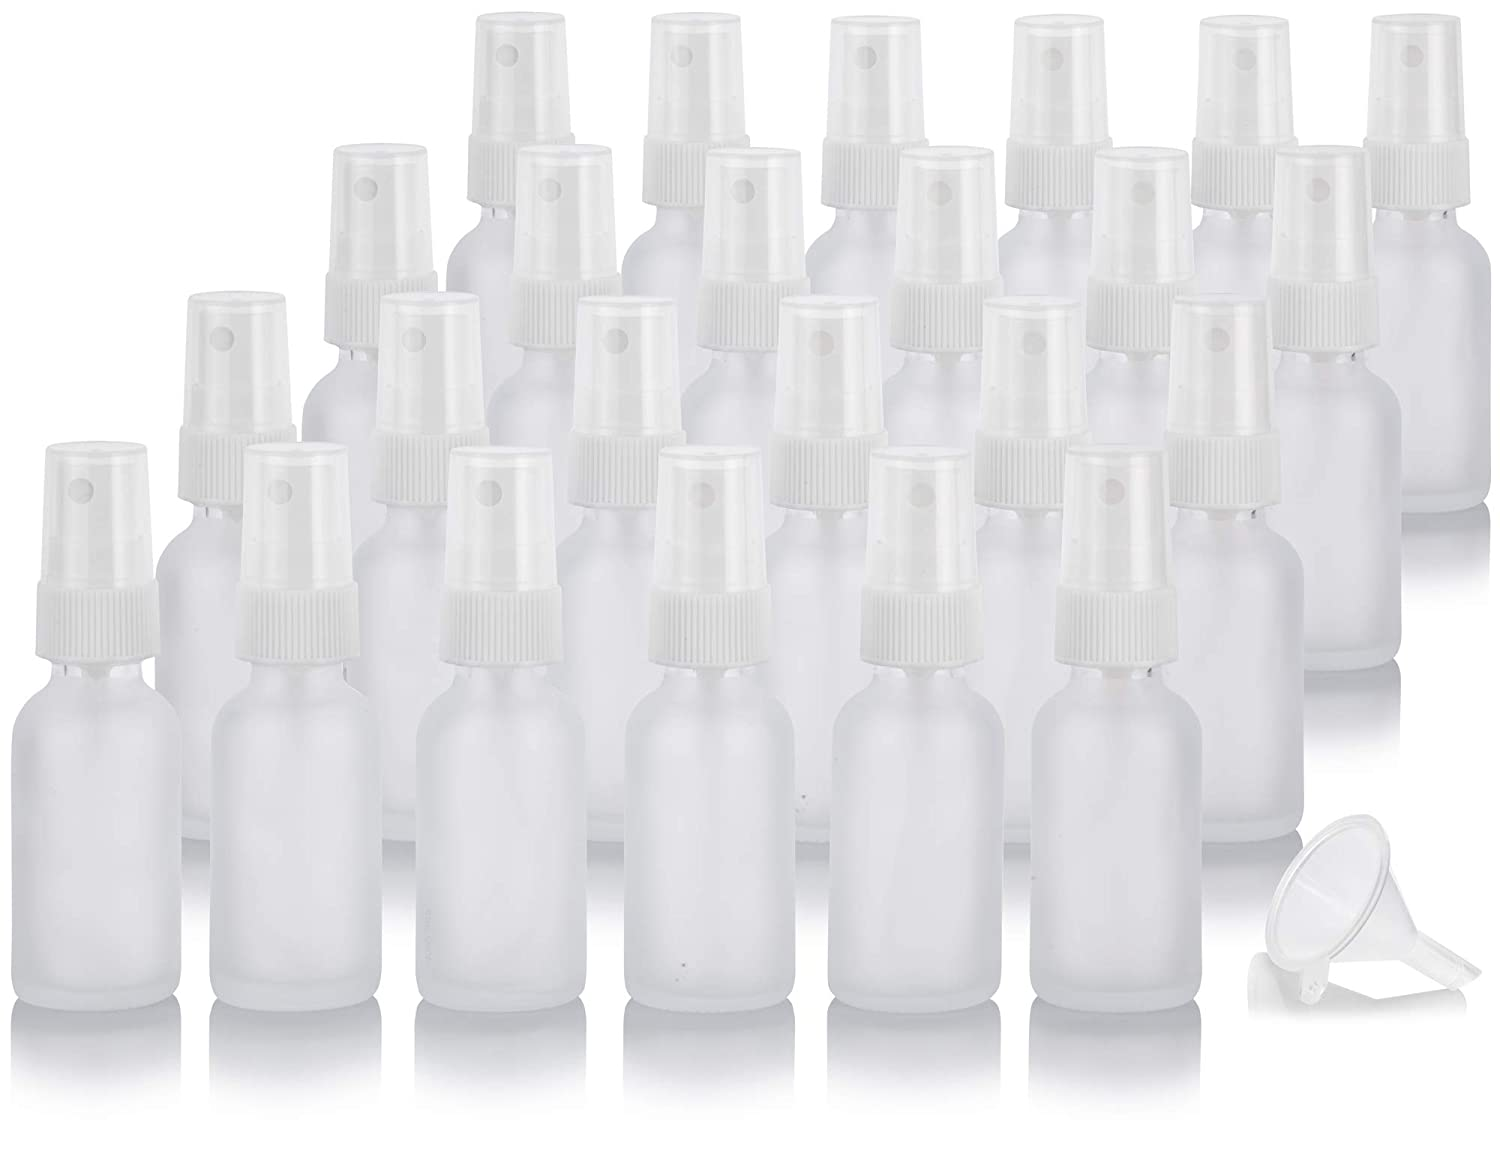 1 oz Frosted Clear Glass Boston Round White Fine Mist Spray Bottle (24 pack) + Funnel for essential oils, aromatherapy, food grade, bpa free